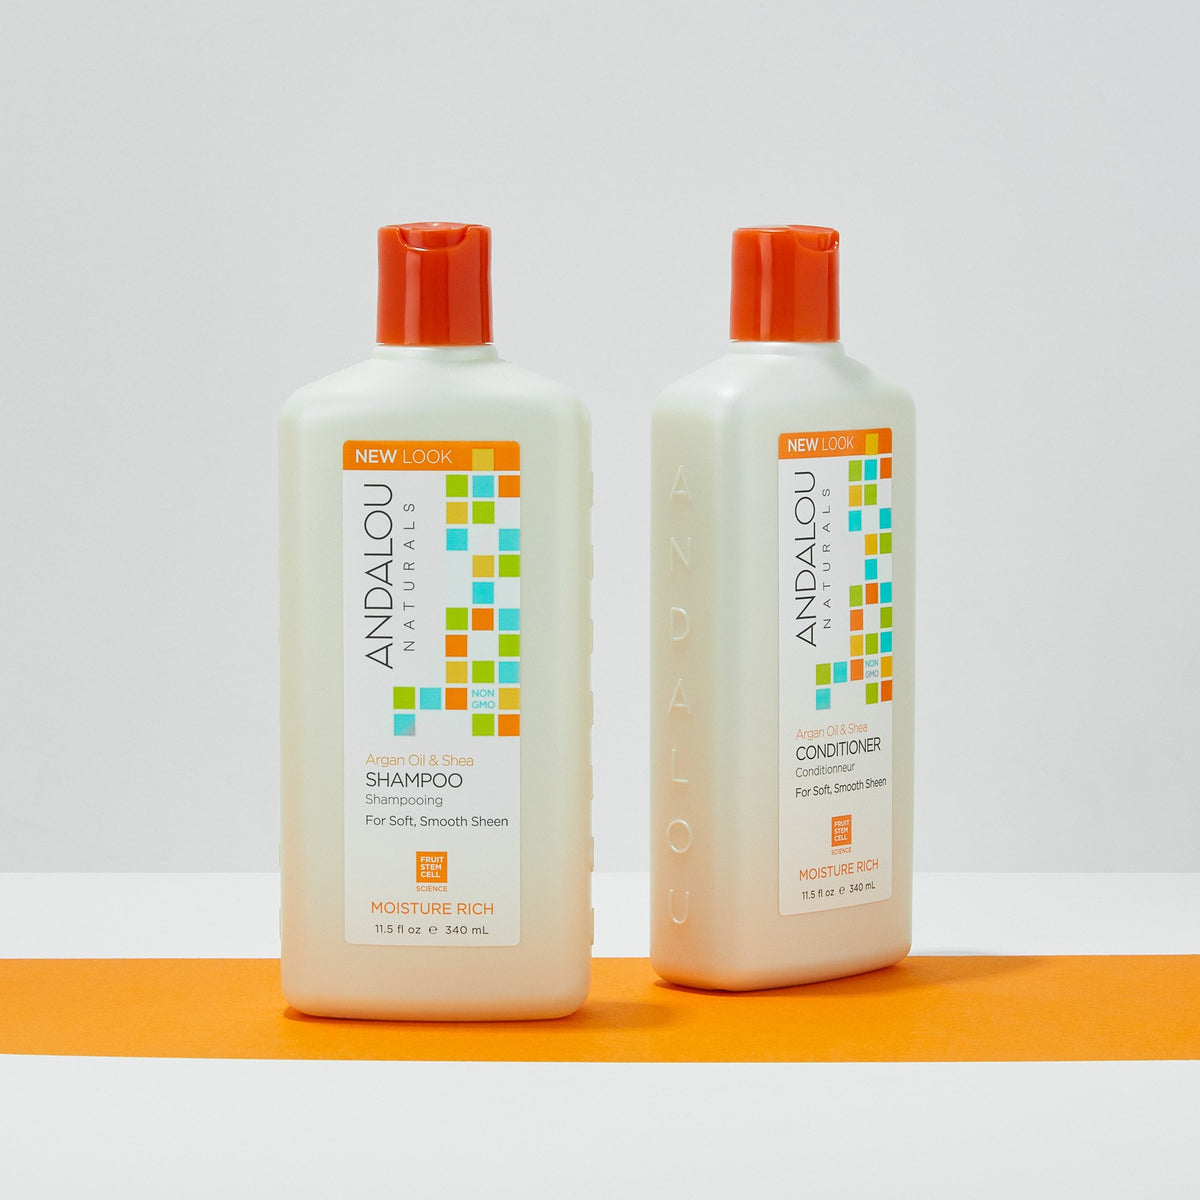 Andalou Naturals Argan Oil & Shea Moisture Rich Conditioner bottles